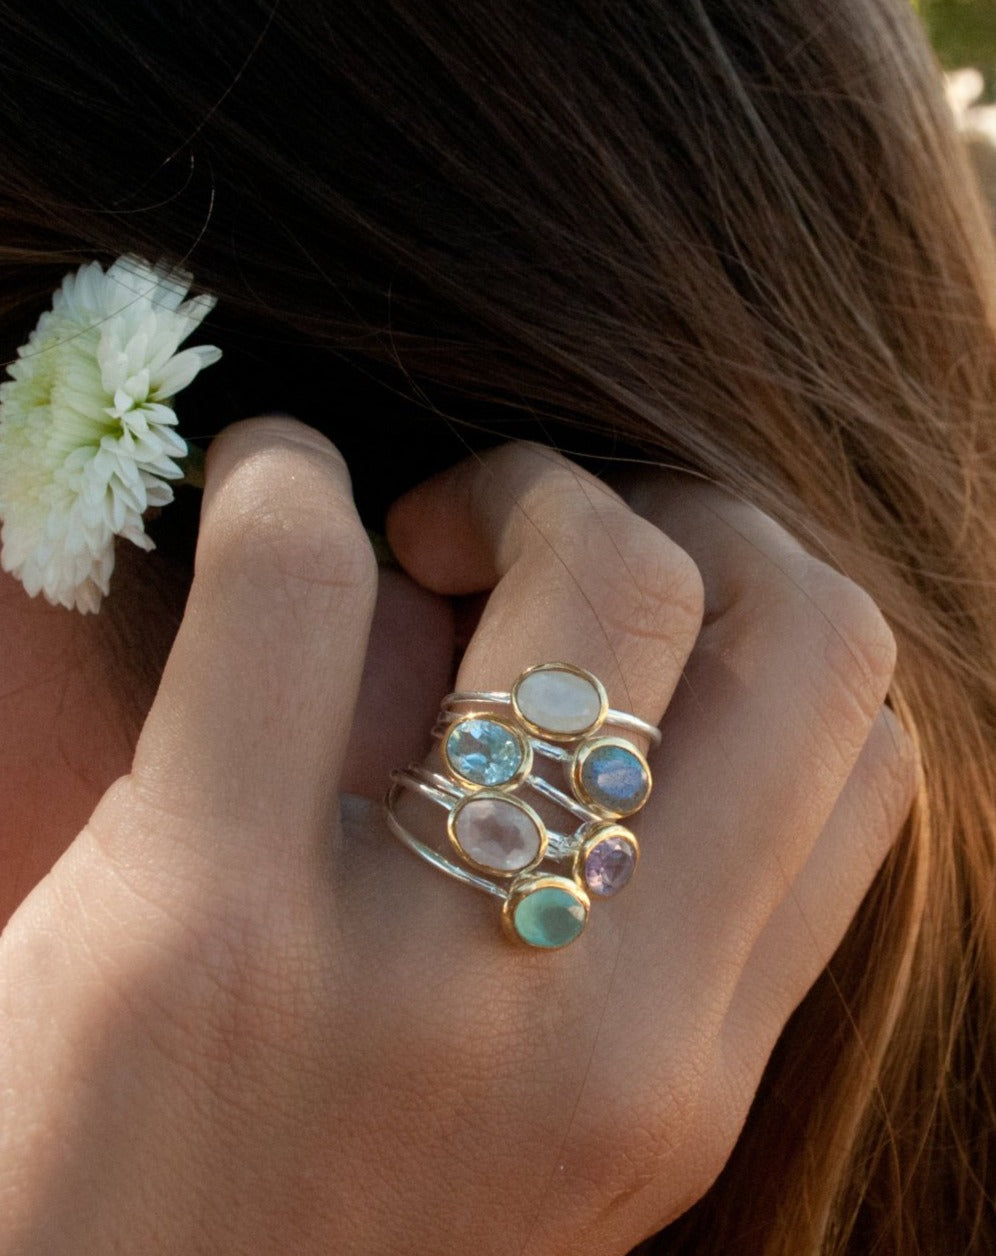 Gemstone Ring * Silver Ring * Blue Topaz * Teal Chalcedony * Moonstone * Amethyst * Labradorite * Stackable * Aqua * Rose Quartz * BJR080